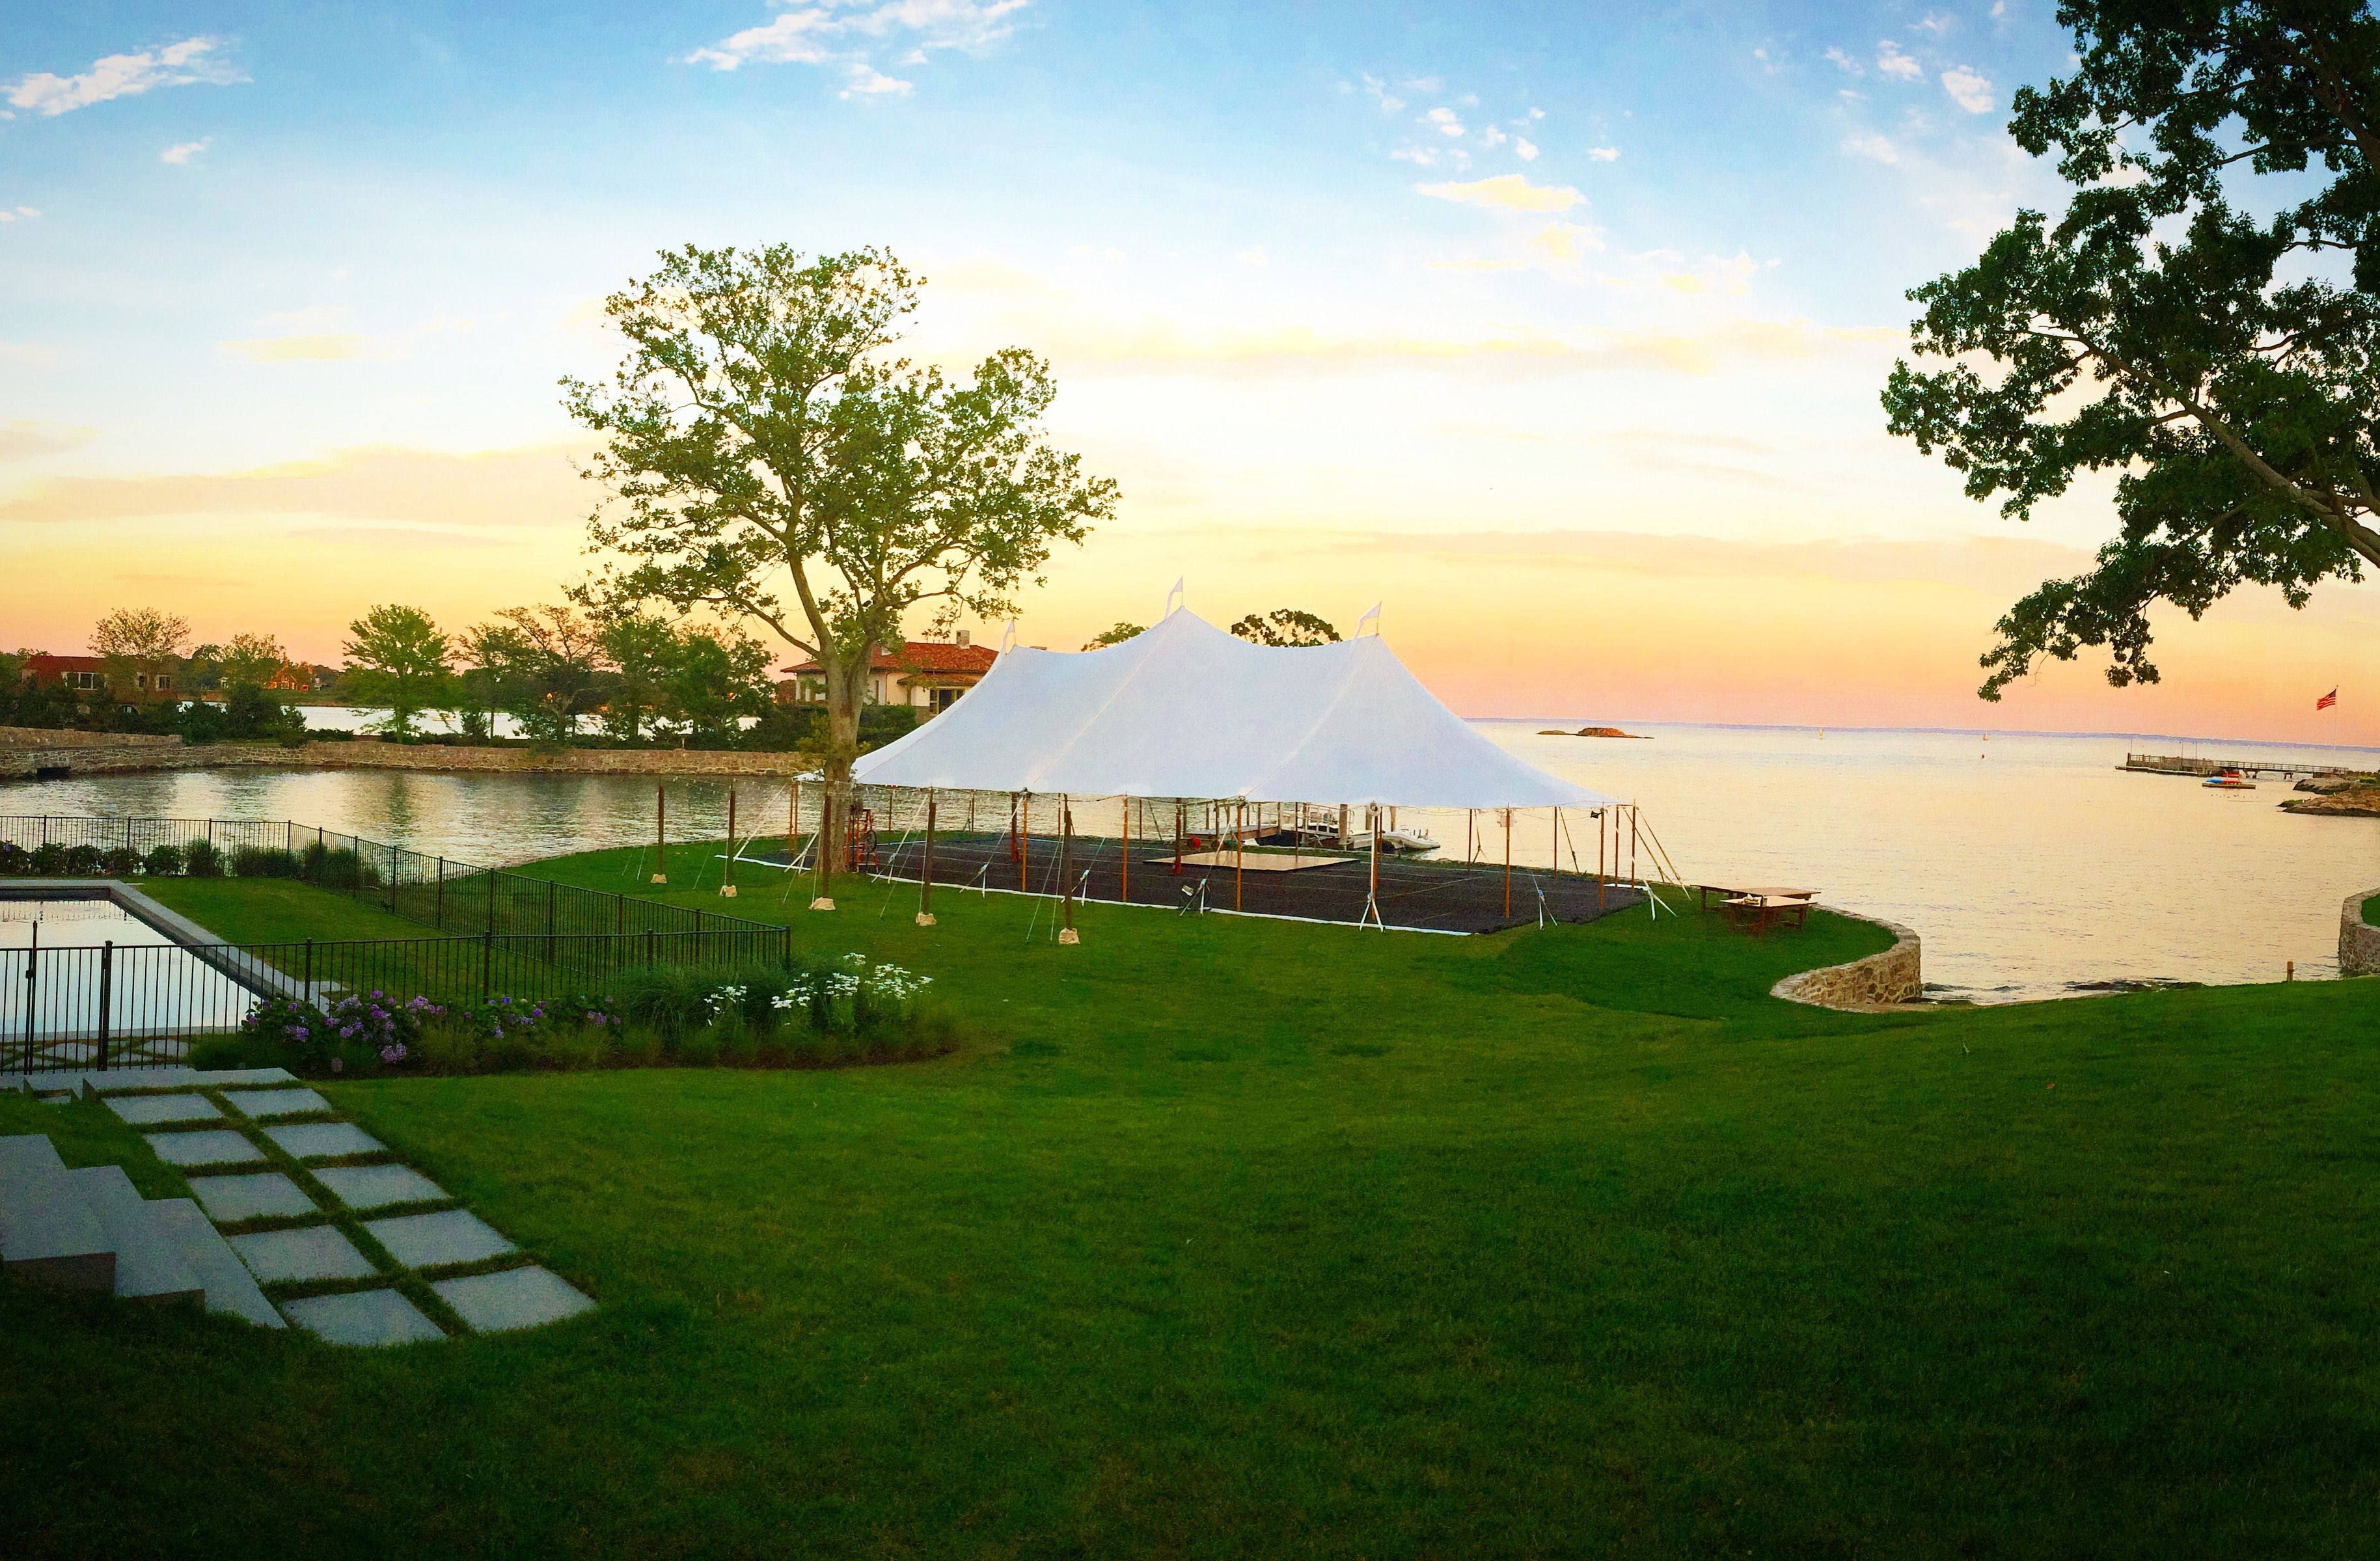 44 x 84 tidewater sailcloth tent at dusk held for a